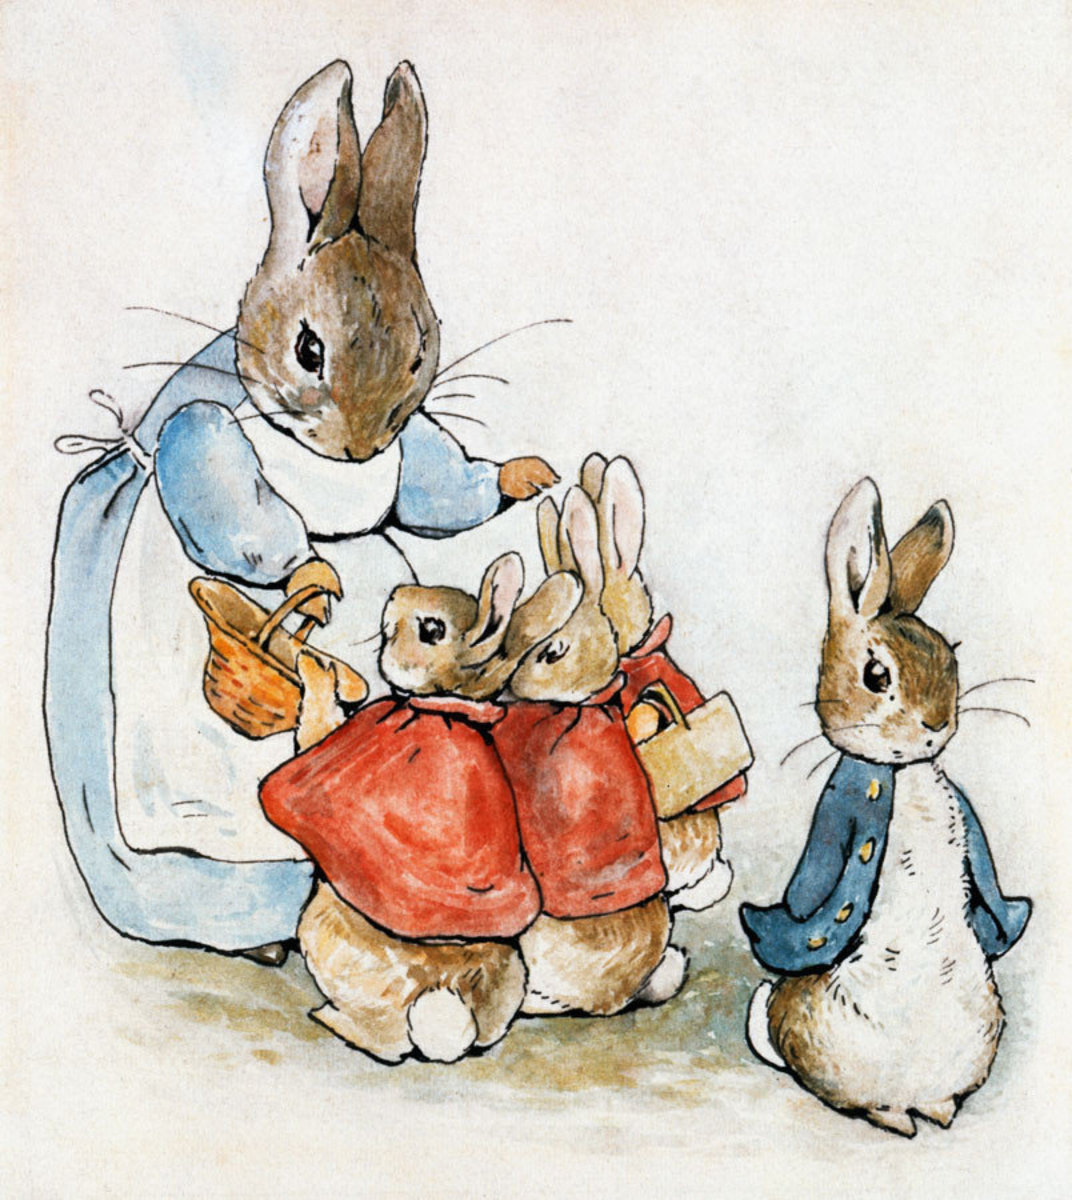 Mrs. Rabbit, in her blue dress and white apron, hands baskets to Flopsy, Mopsy and Cotton-tail while Peter Rabbit looks away